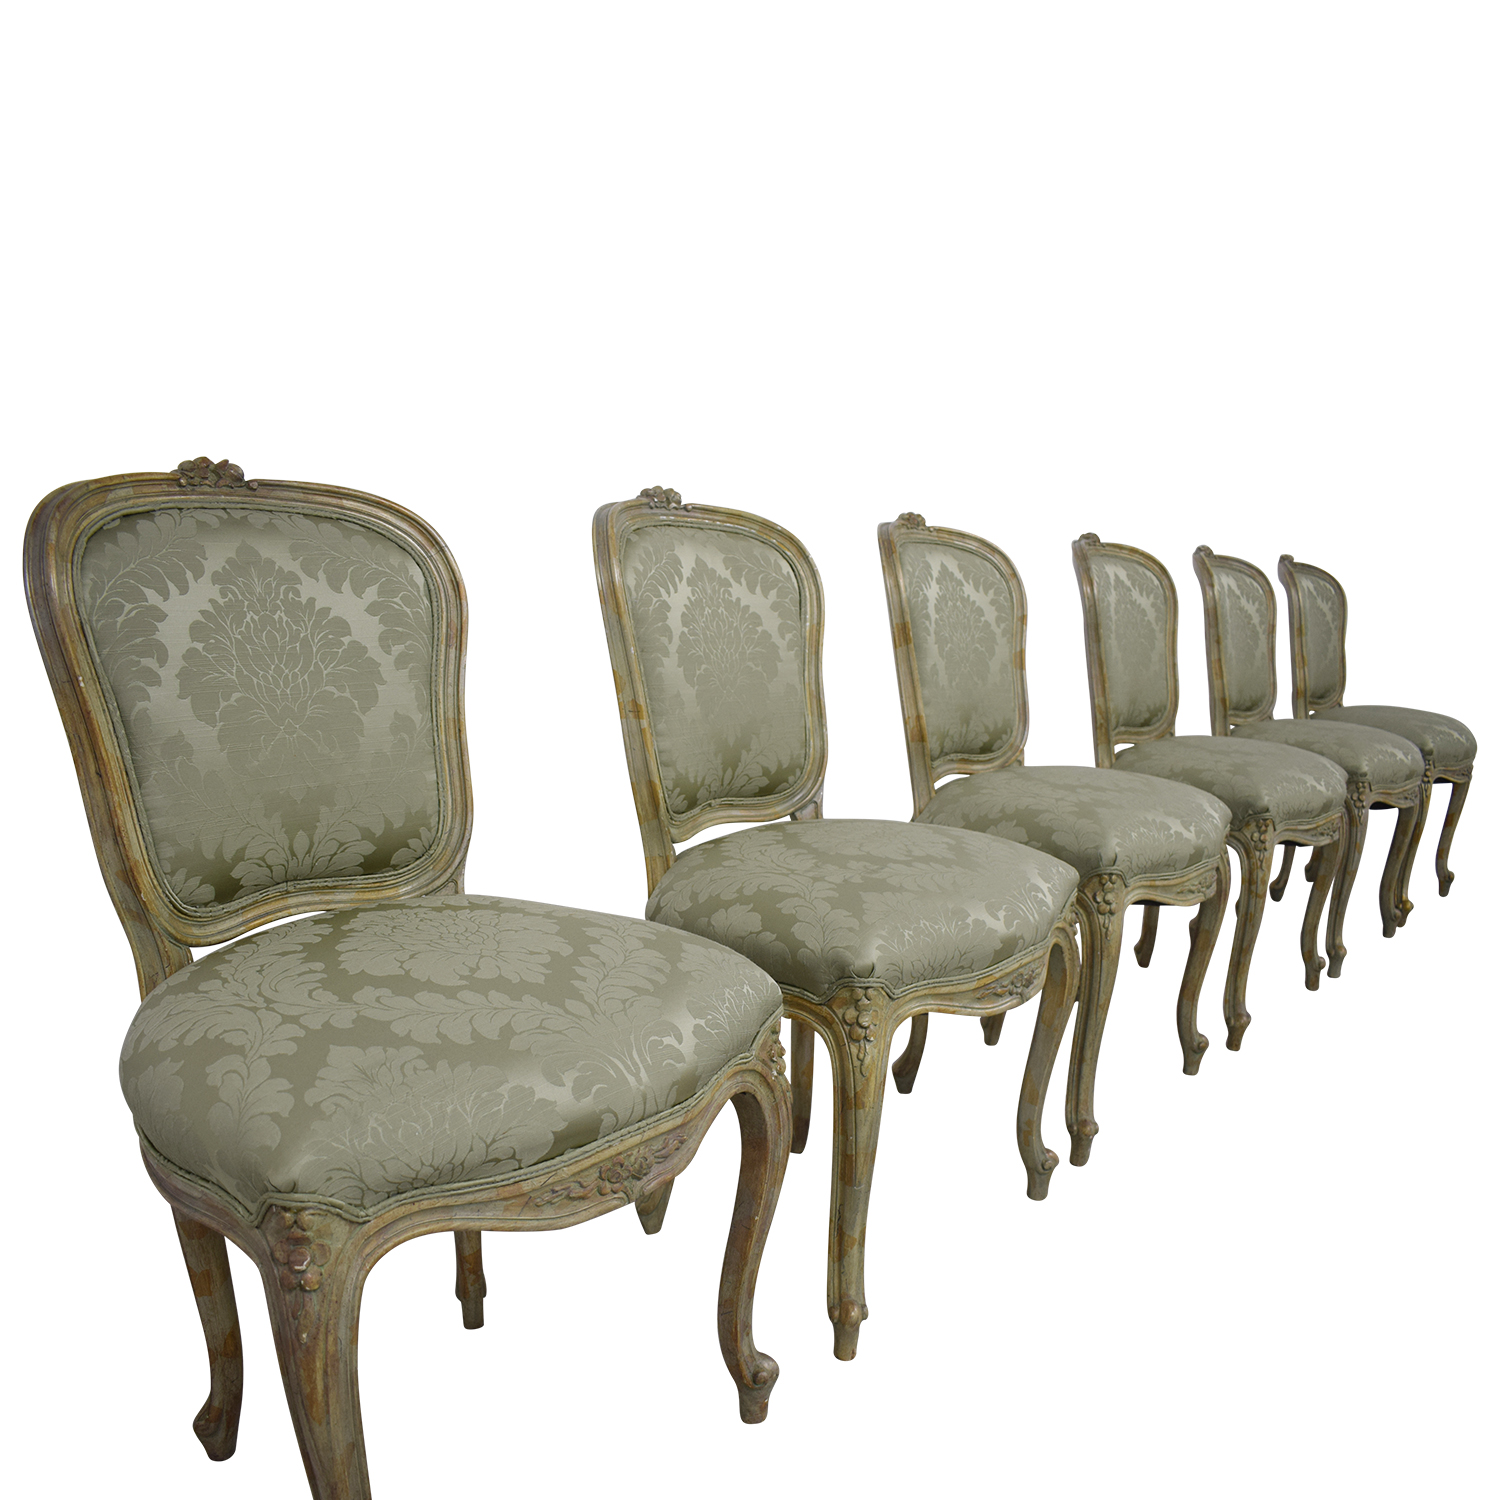 90 Off Devon Shops Devon Shop French Celery Damask Upholstered Dining Chairs Chairs